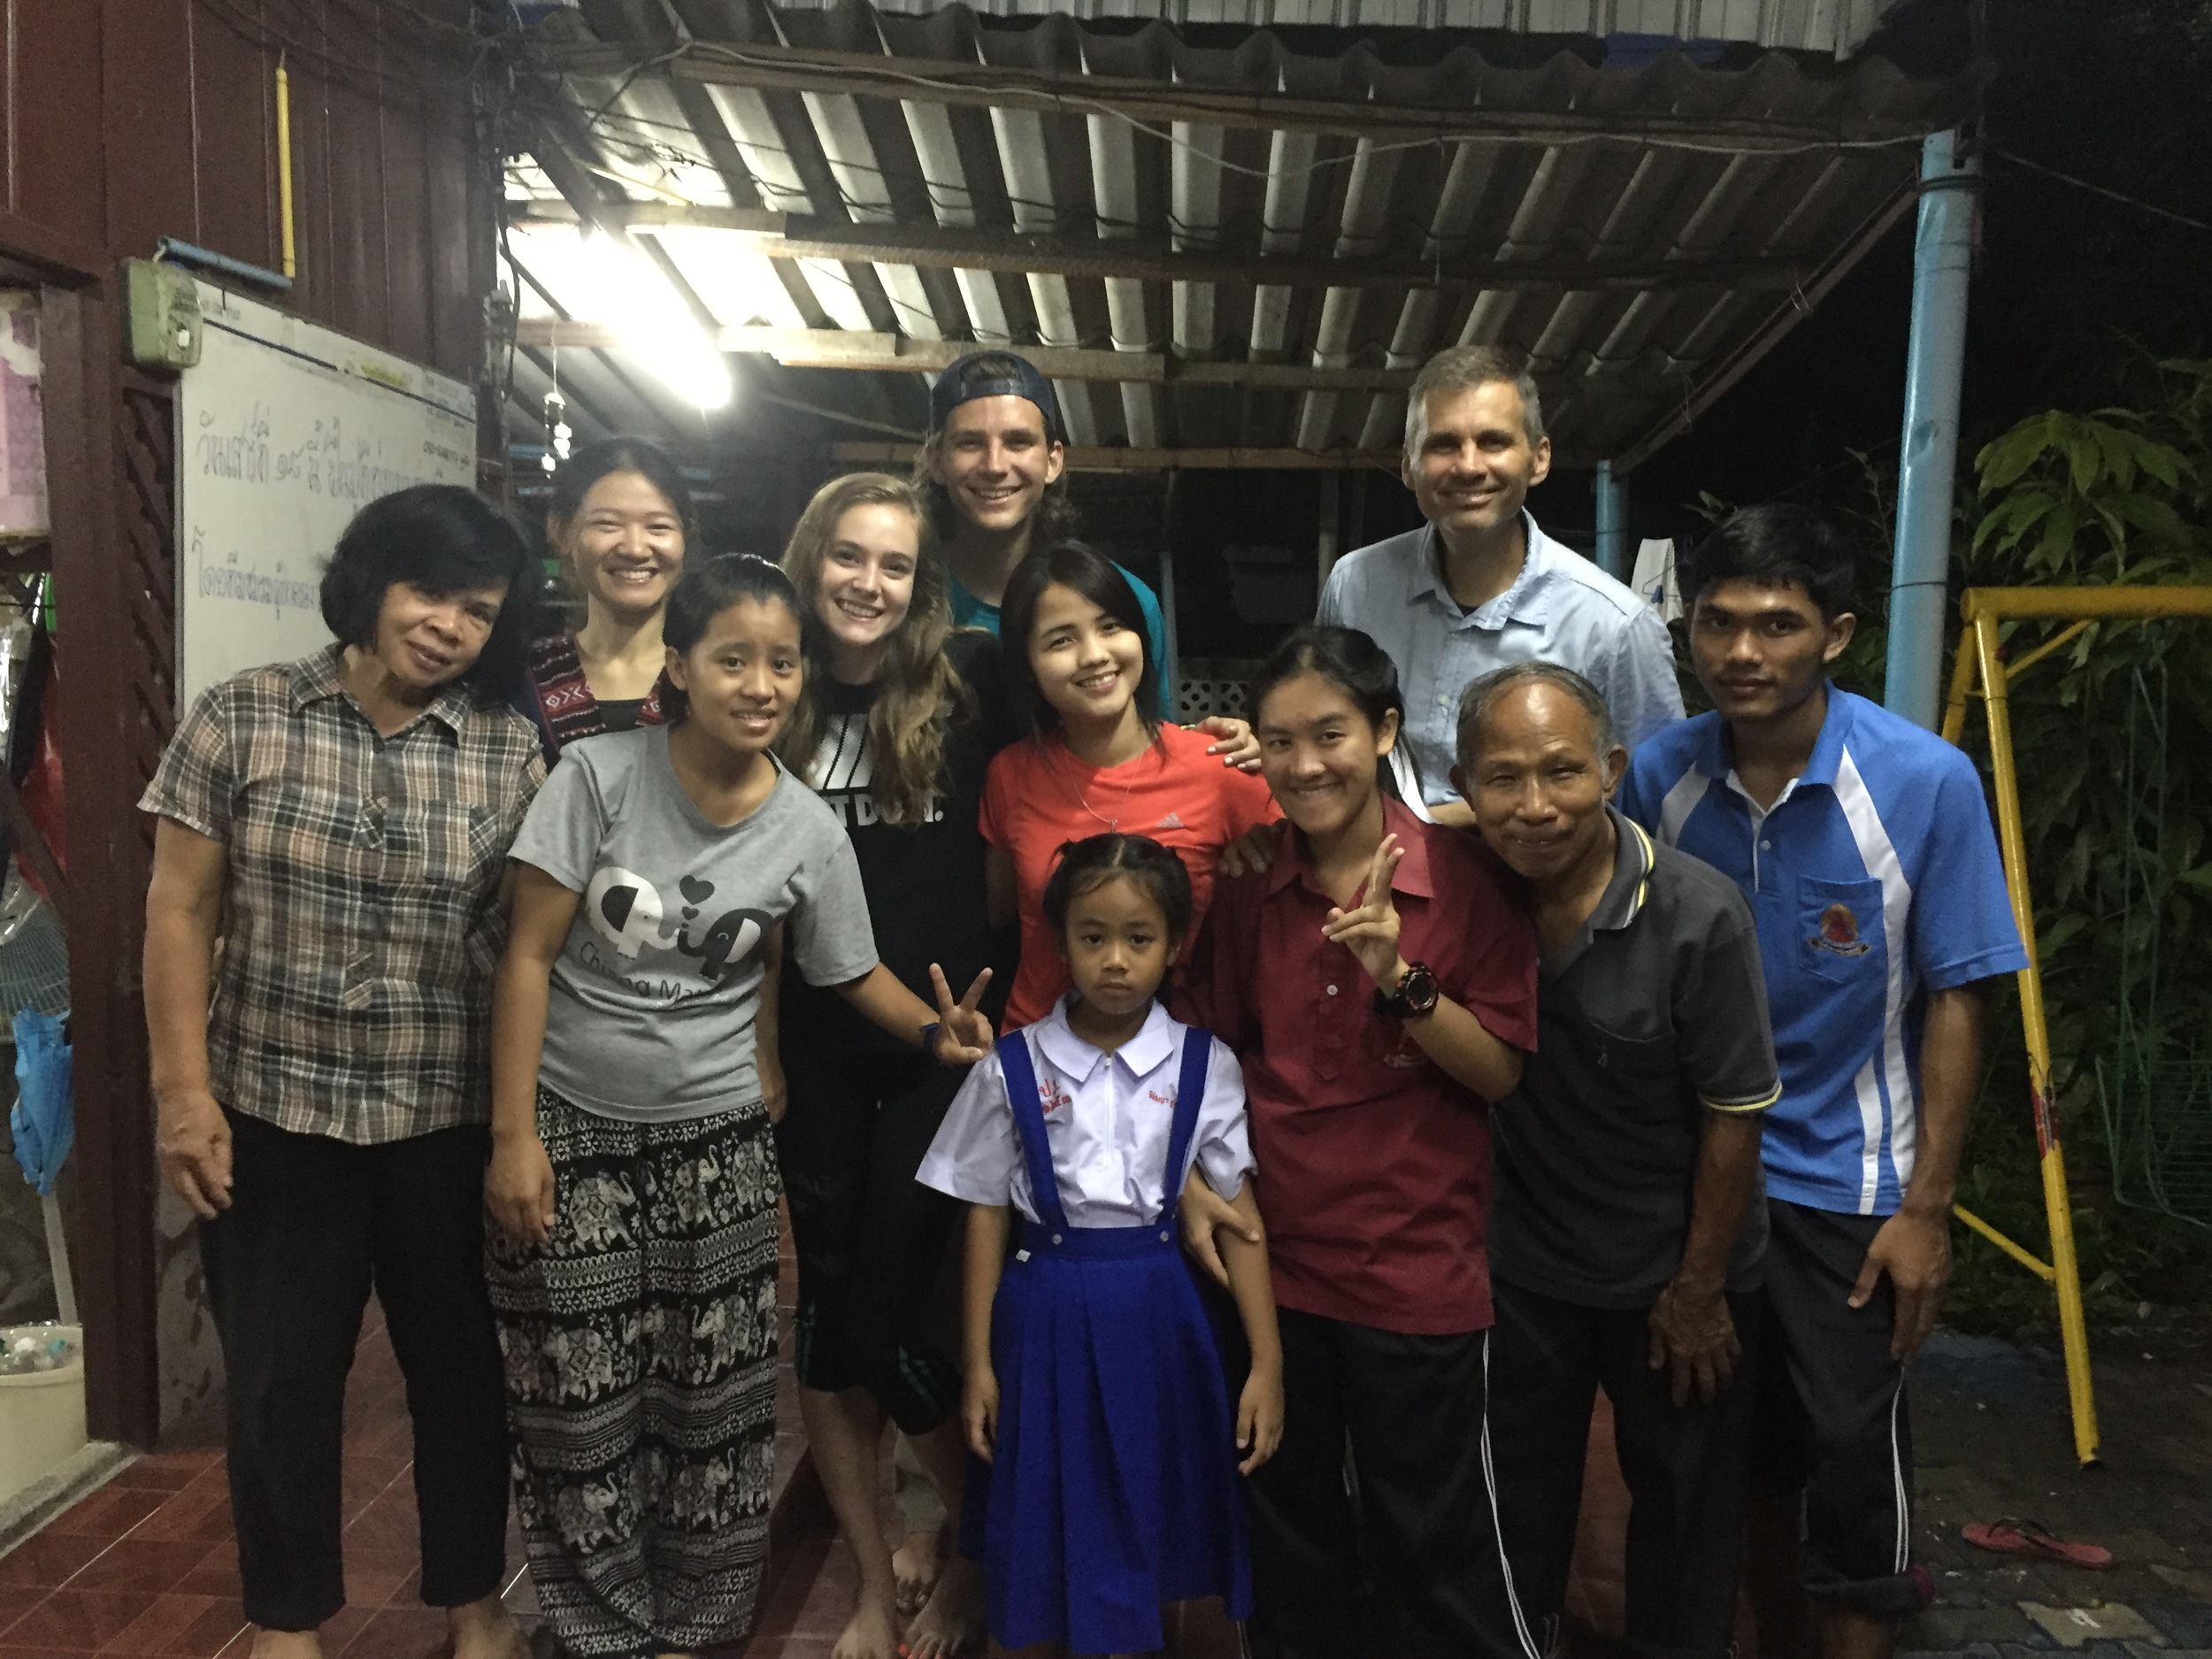 A few of the delightful children and staff at Huen Nam Jai Orphanage